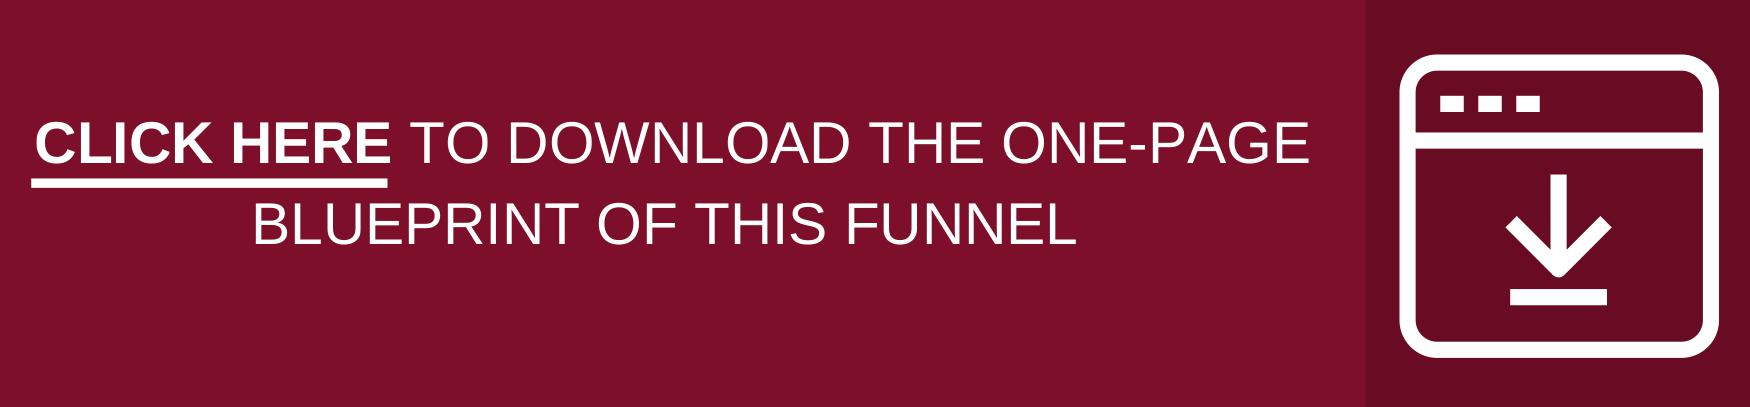 Sales funnel teardown sam ovens storysuasion click here to subscribe malvernweather Image collections